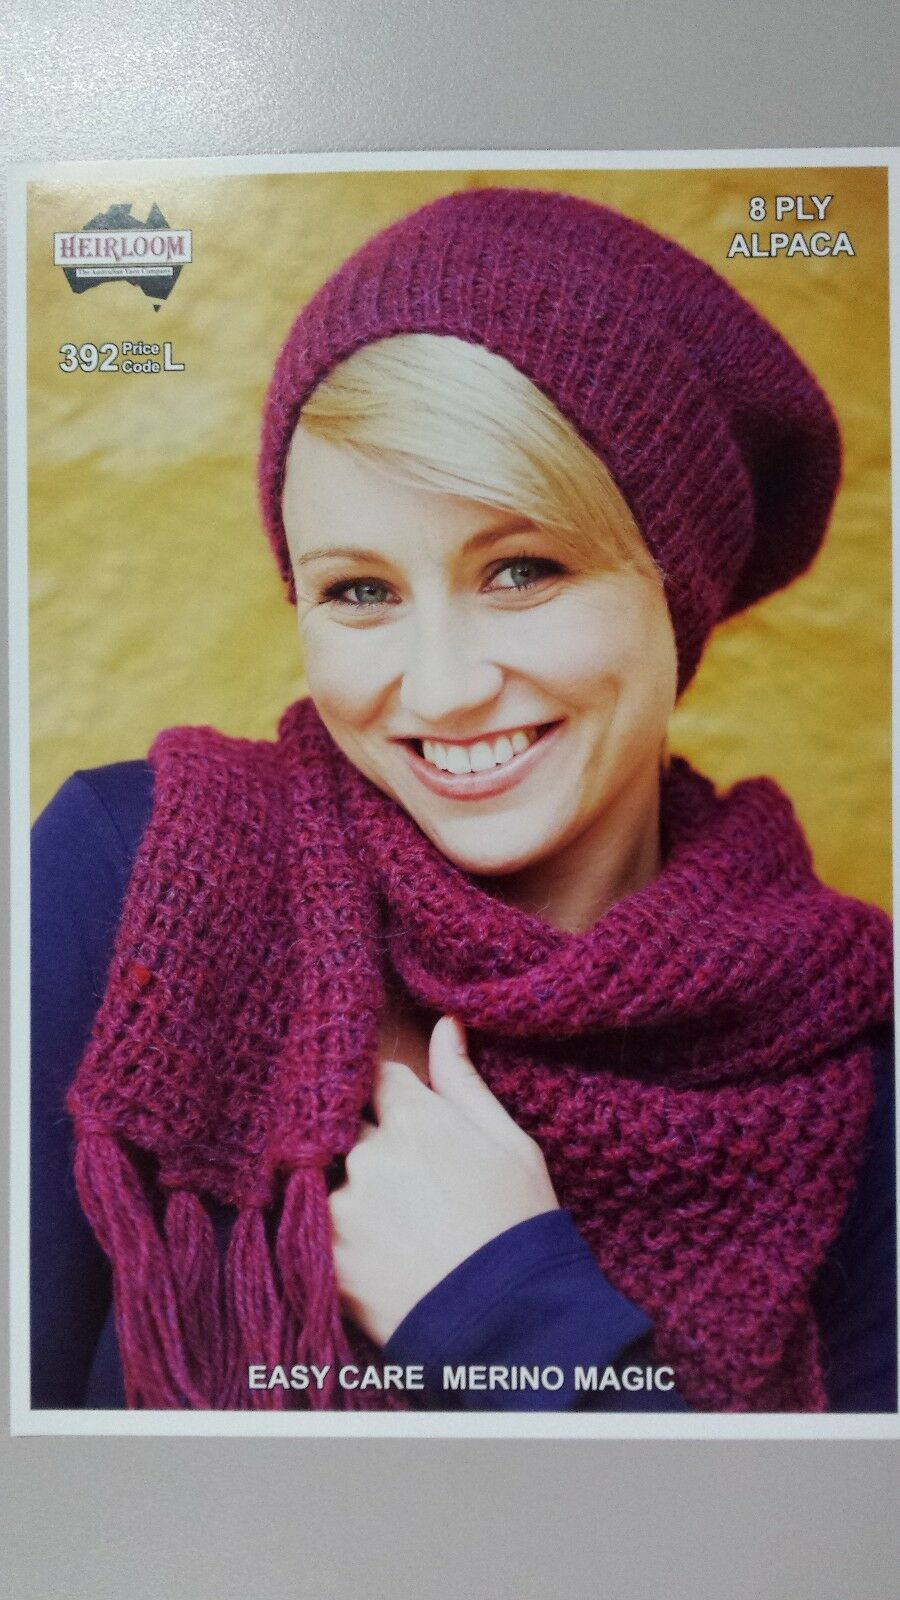 Heirloom Knitting Pattern #392 to knit Hat & Scarf in 8 Ply   AUD 6.15 - ...